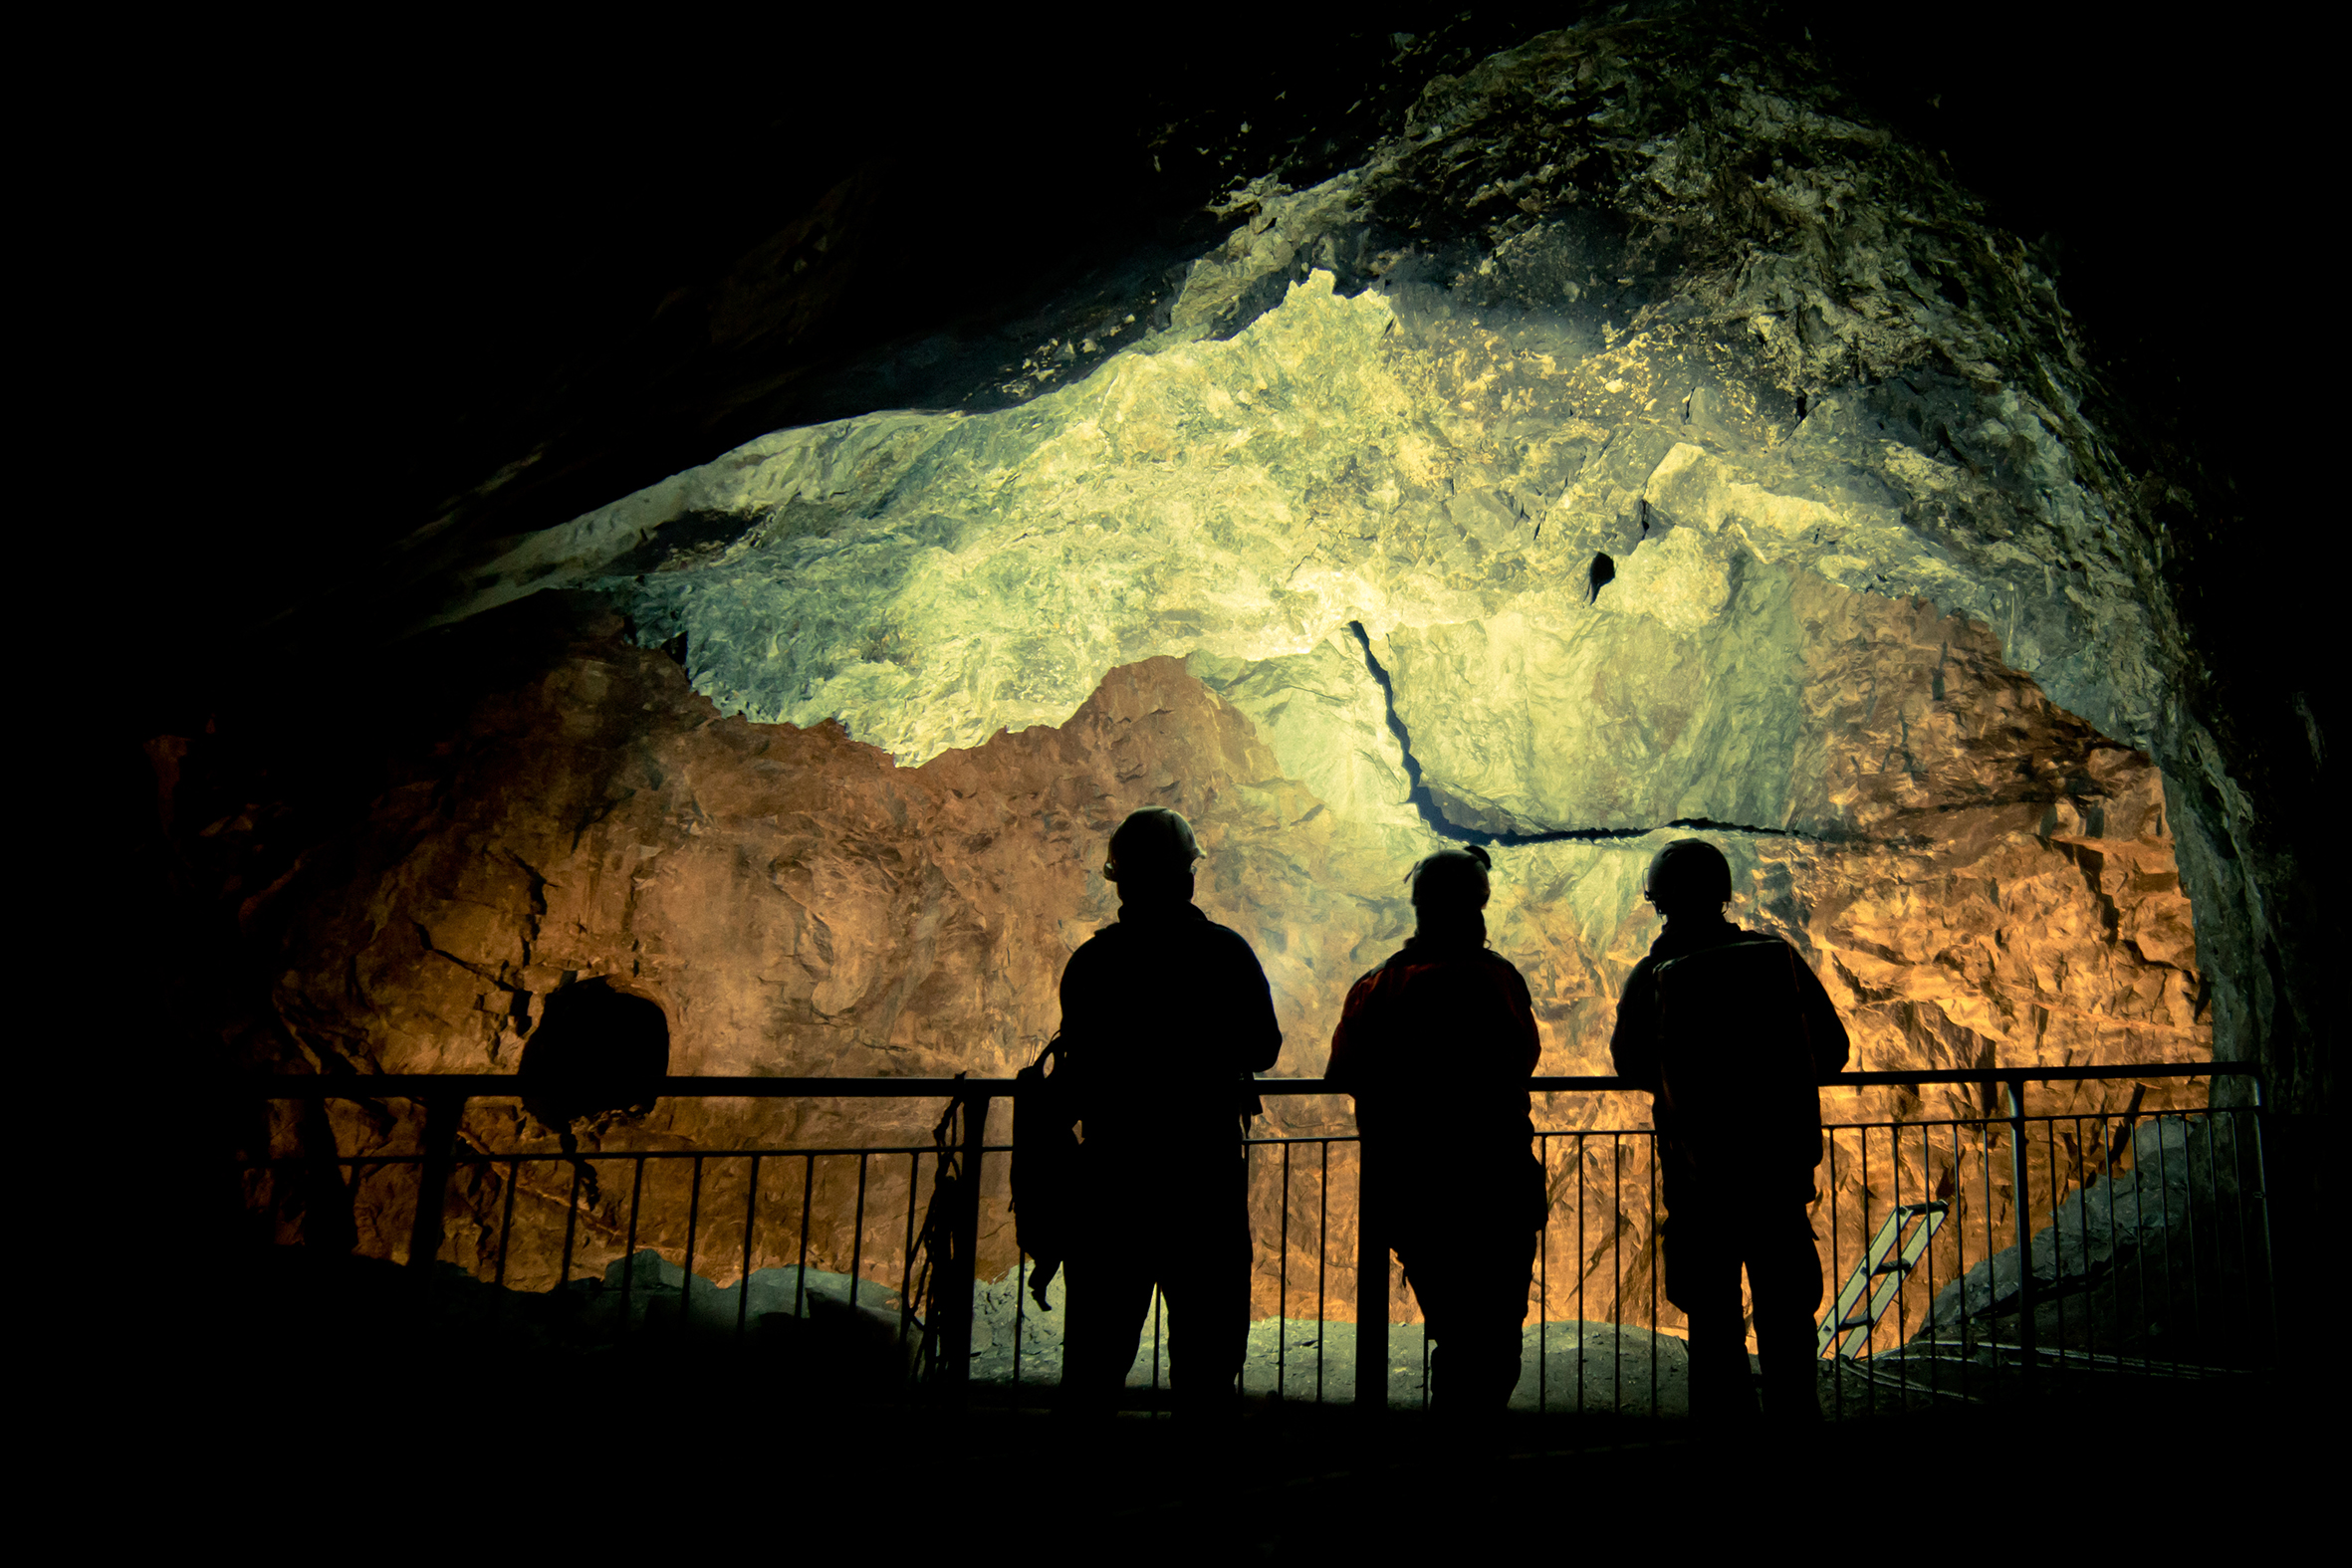 Persons in front of a shaft